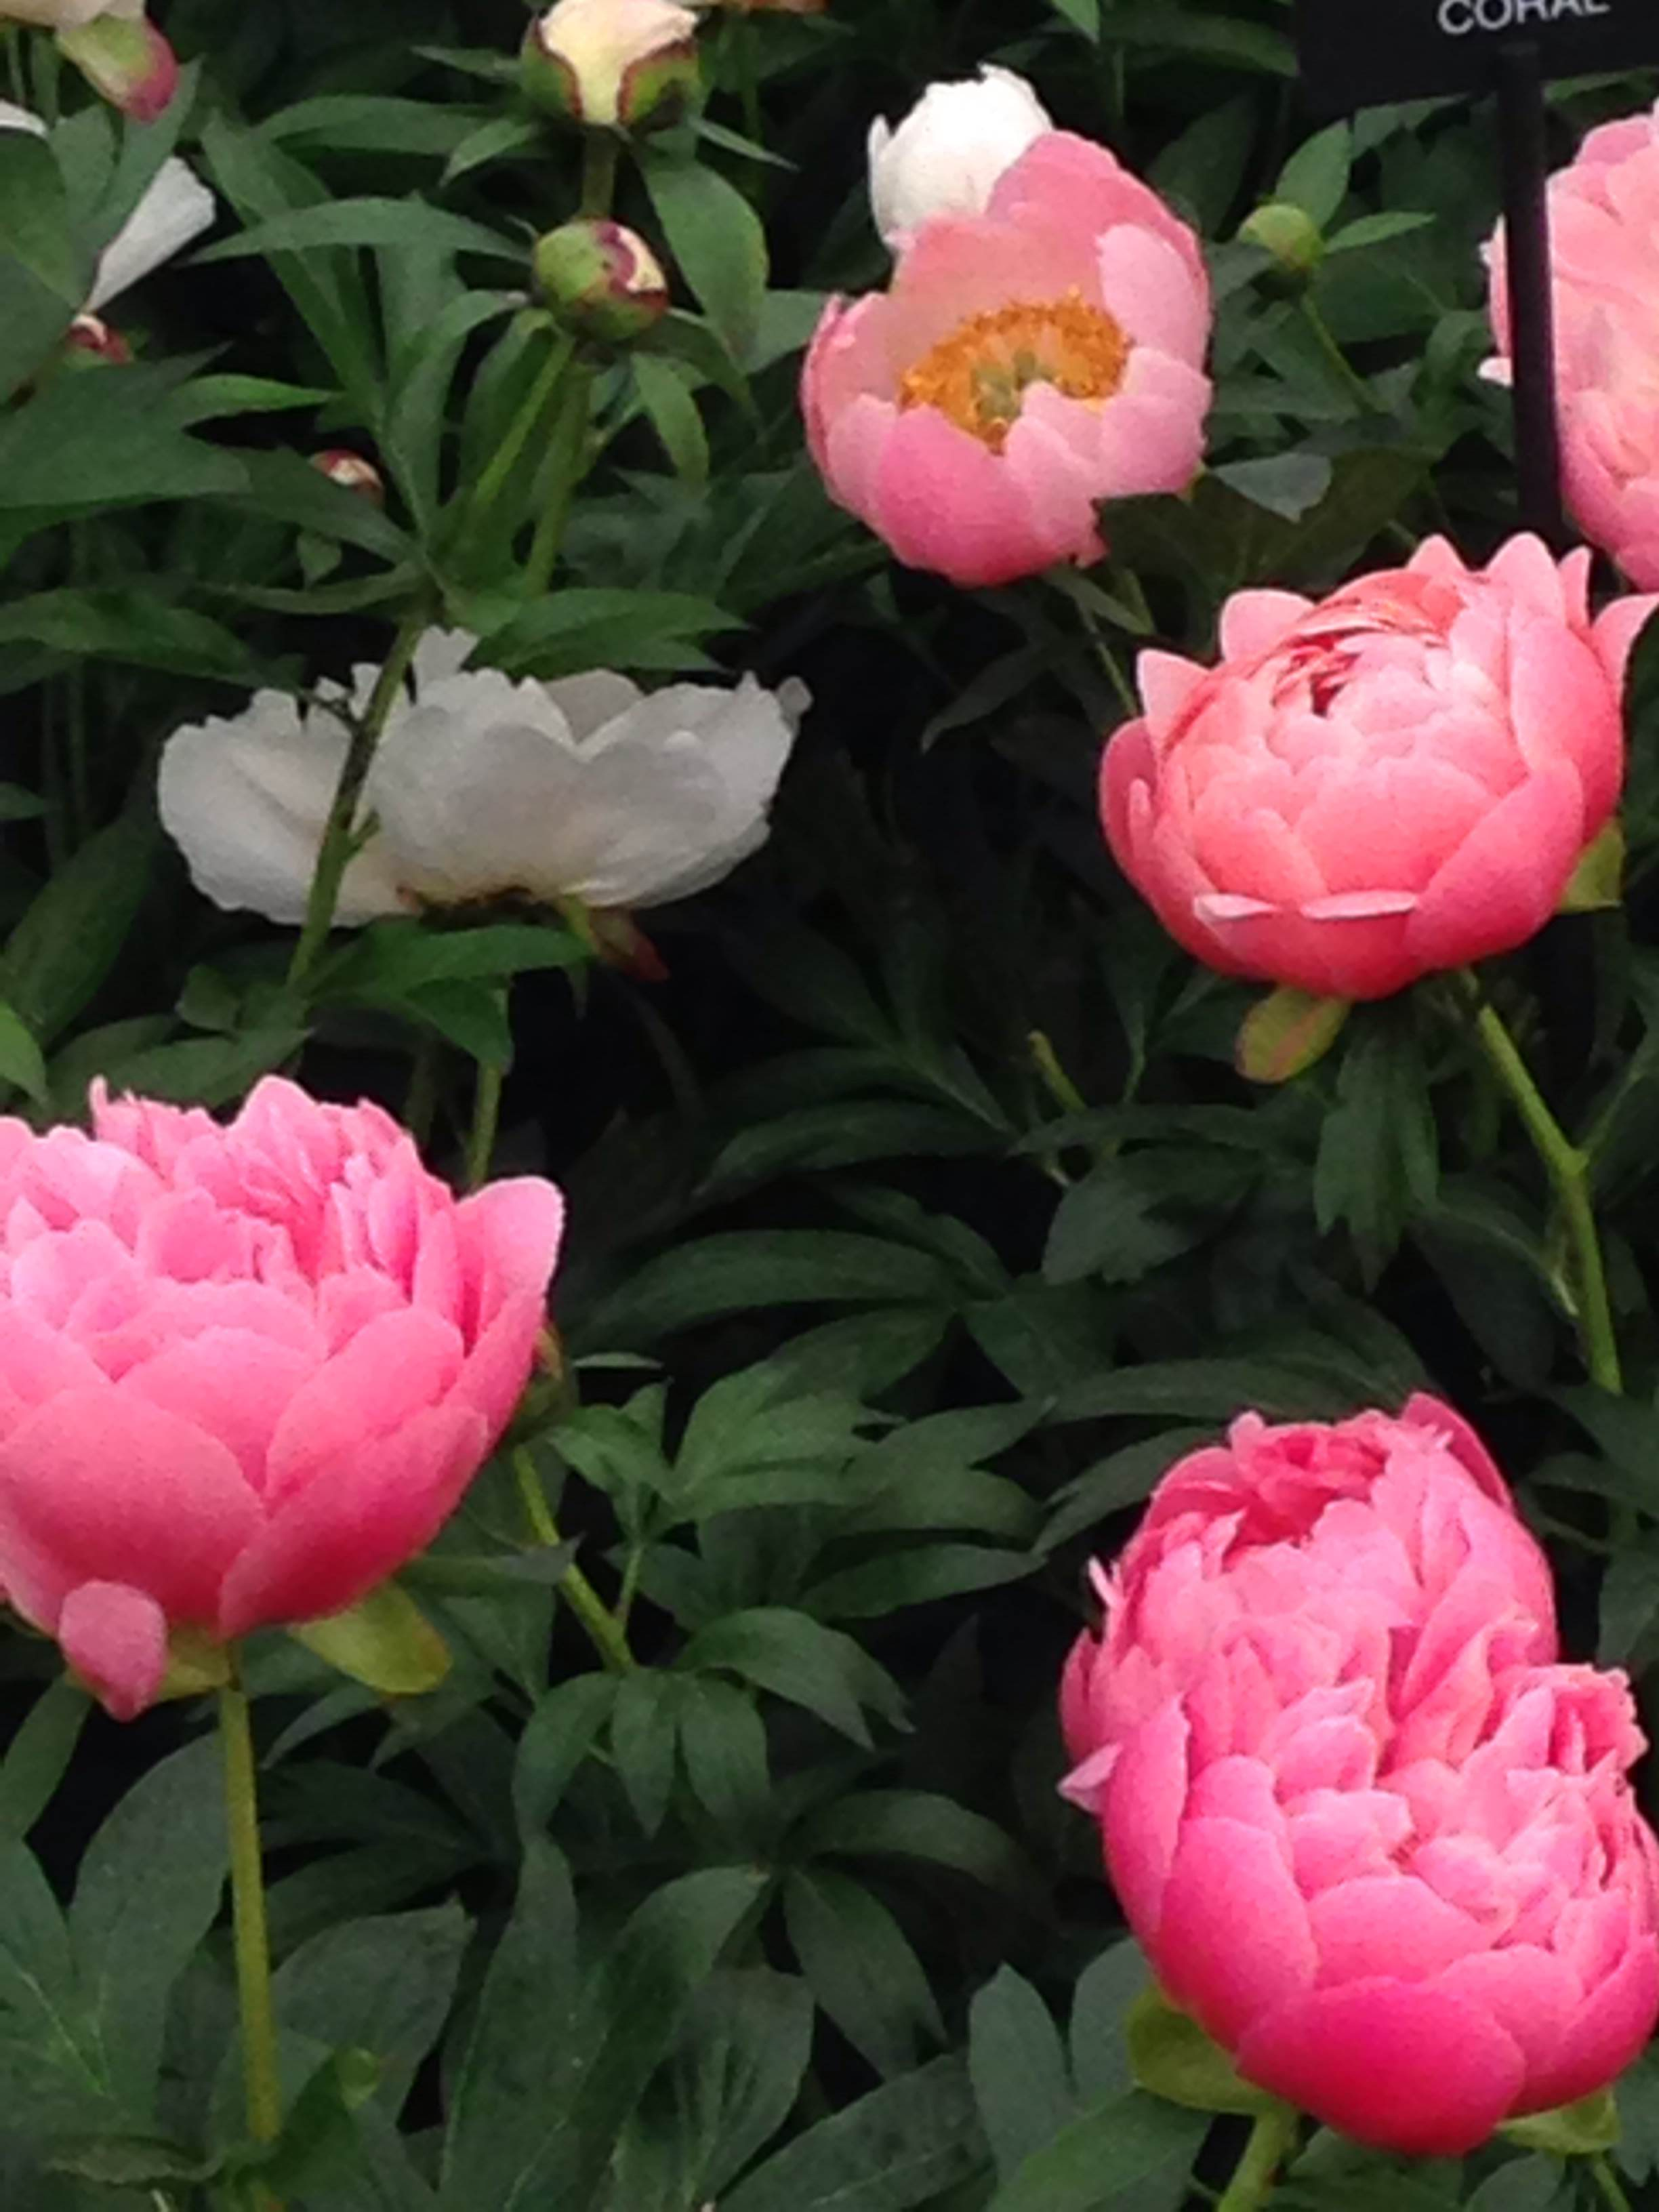 I could look at peonies forever - they are so beautiful